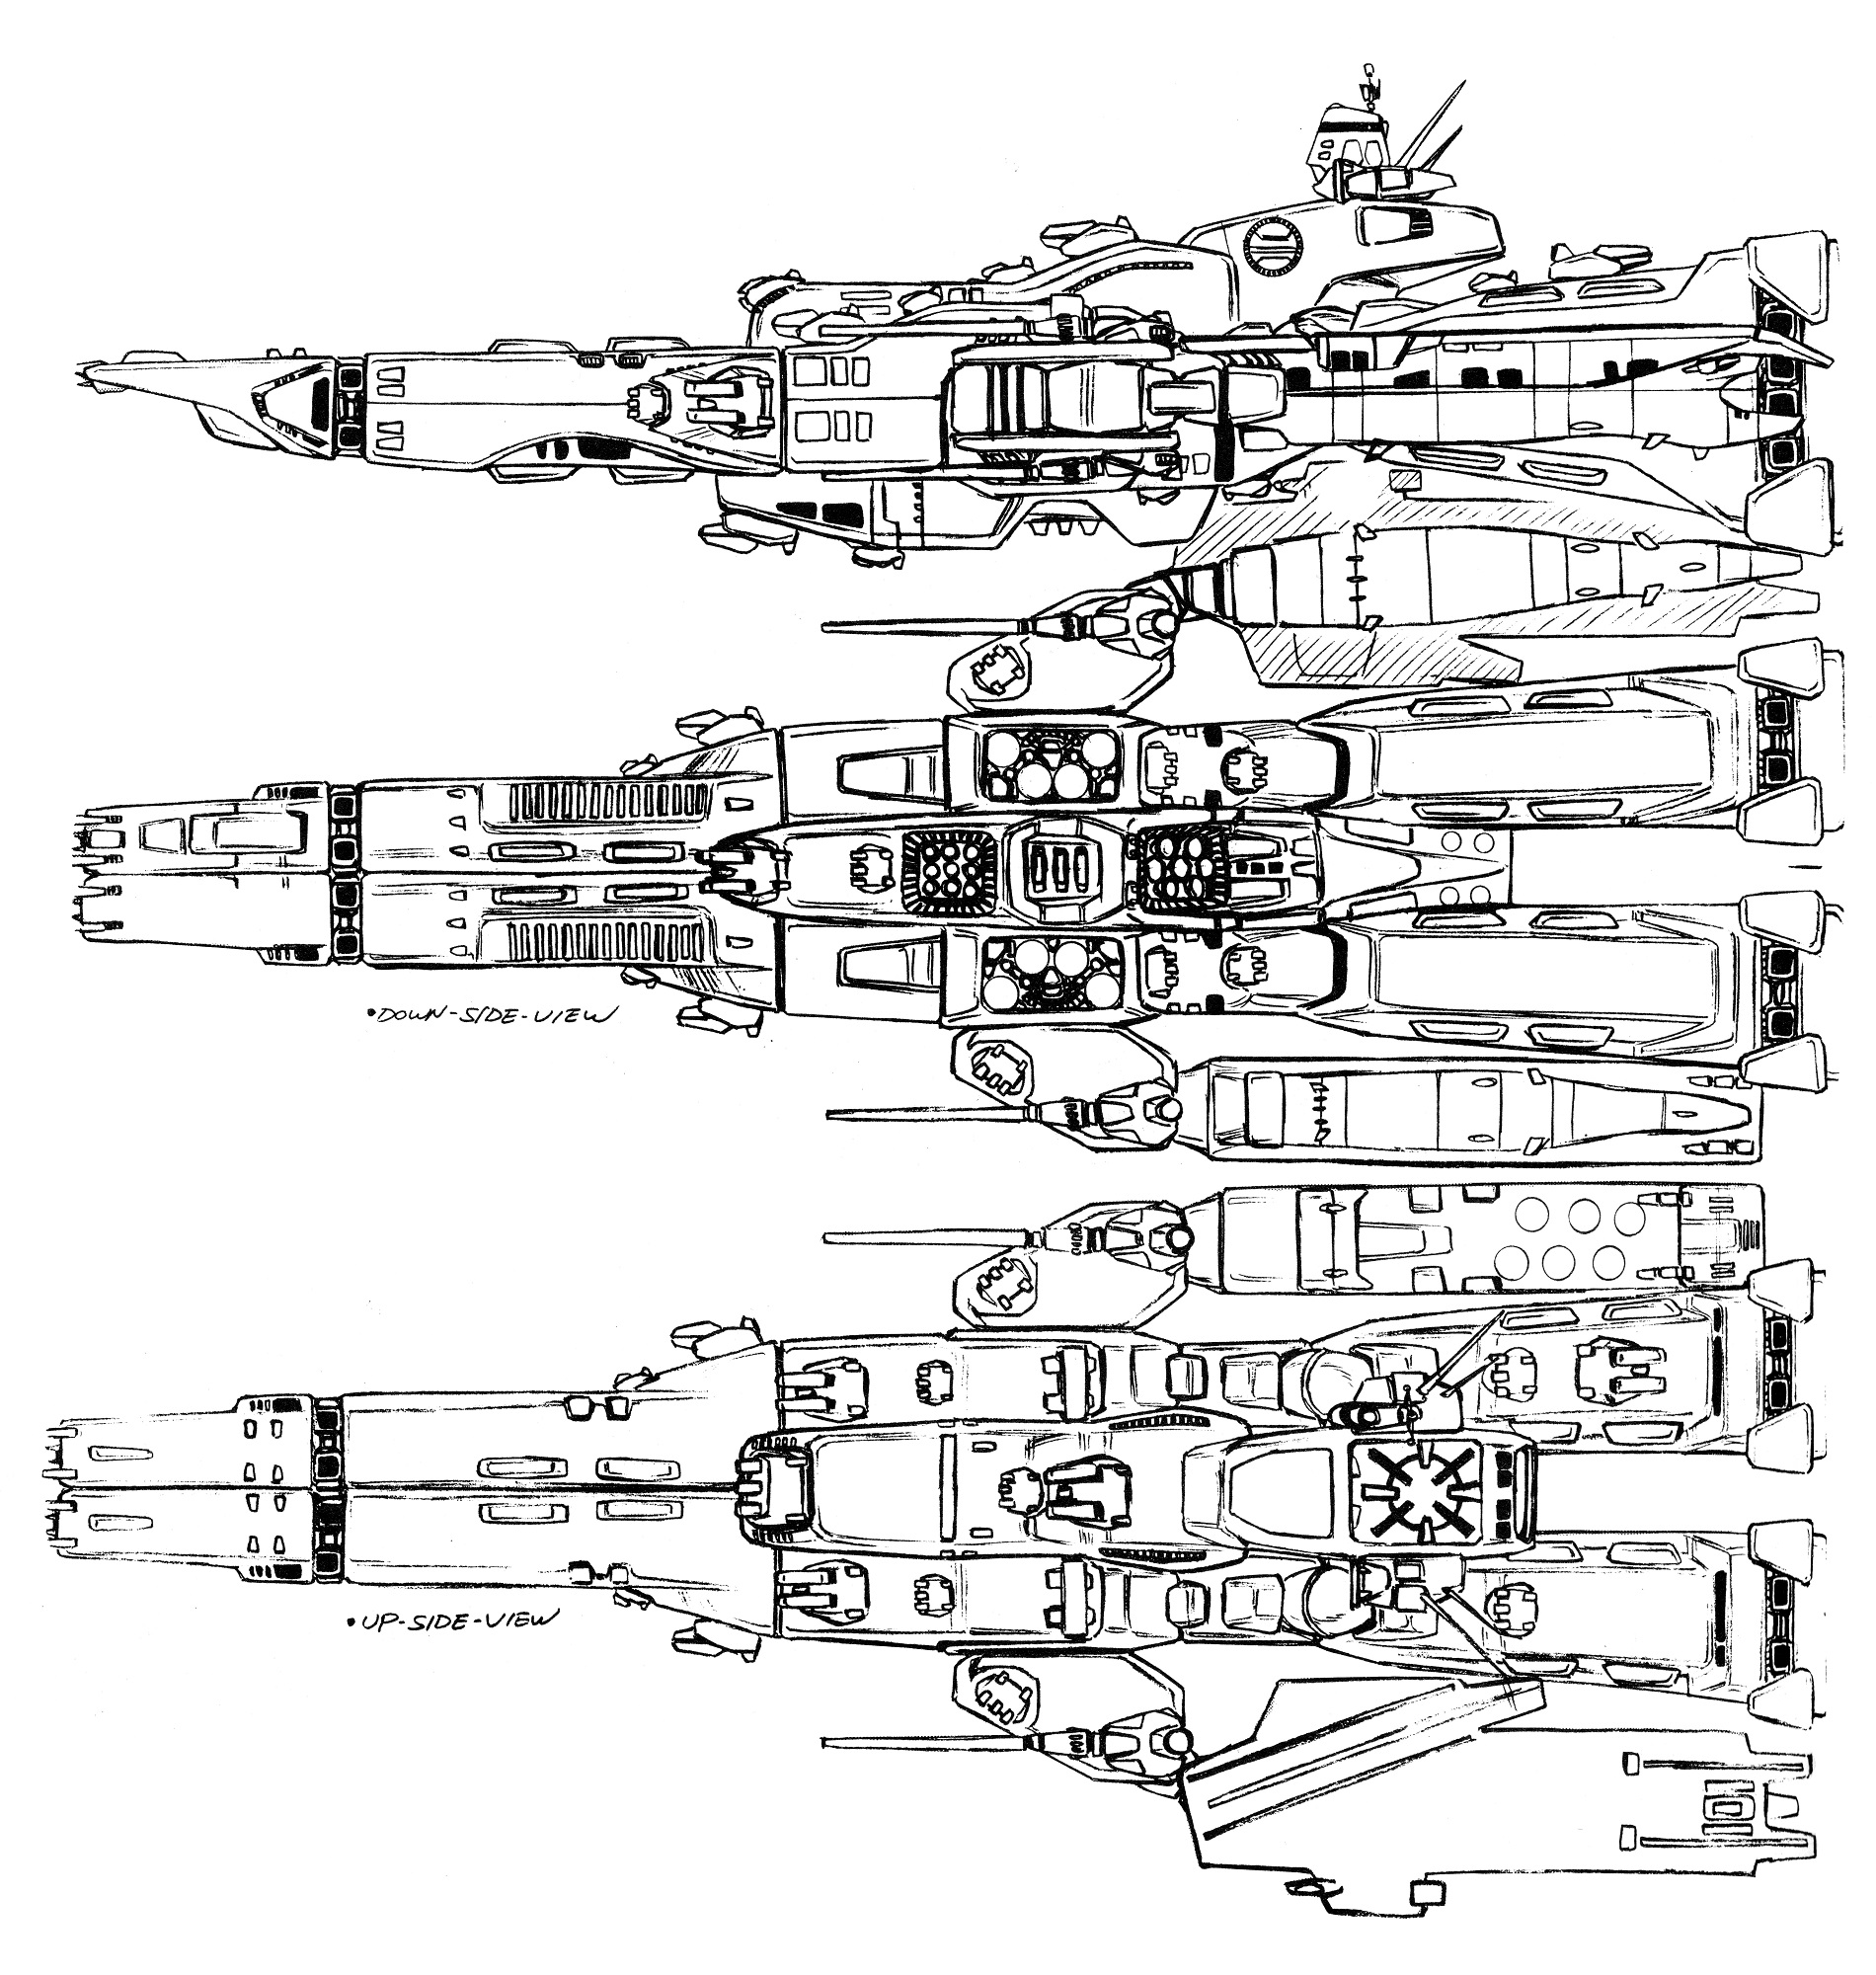 SDF-1 Macross External Views Cruiser 21